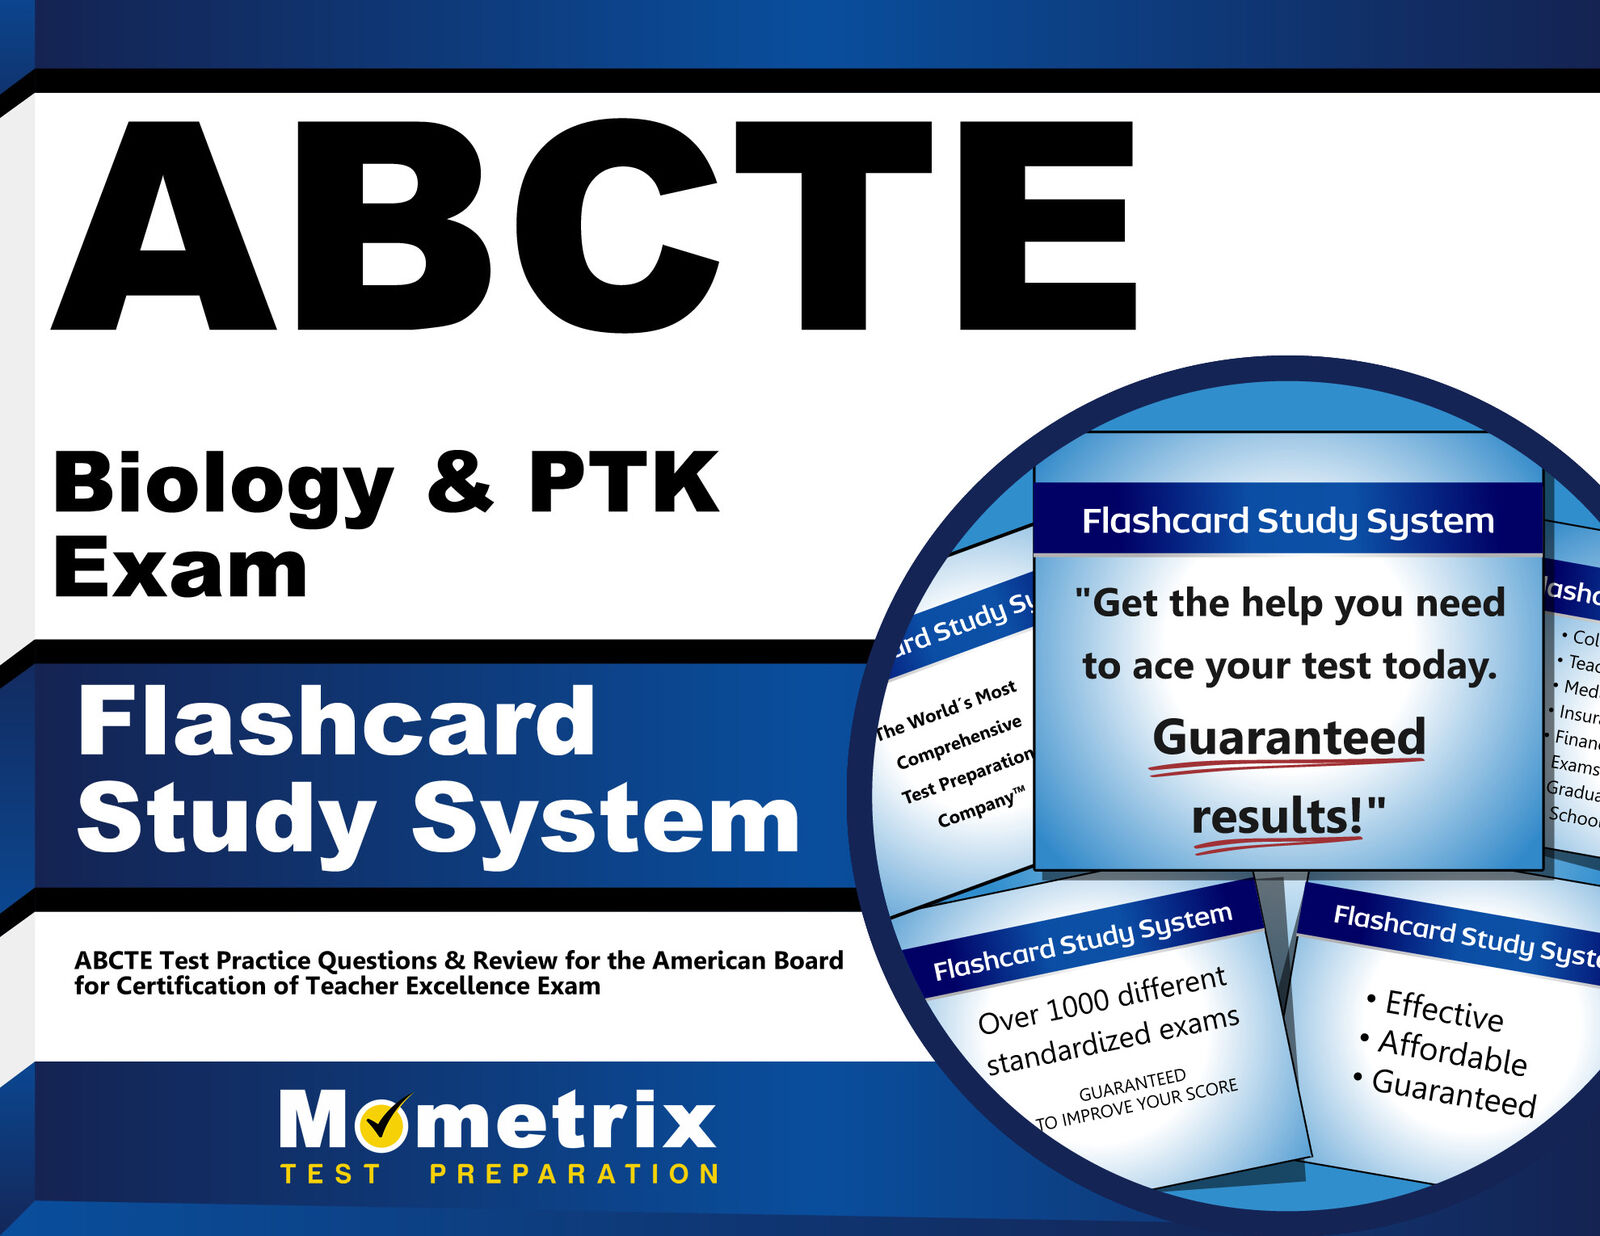 Abcte biology and ptk exam flashcard study system abcte test picture 1 of 1 1betcityfo Images